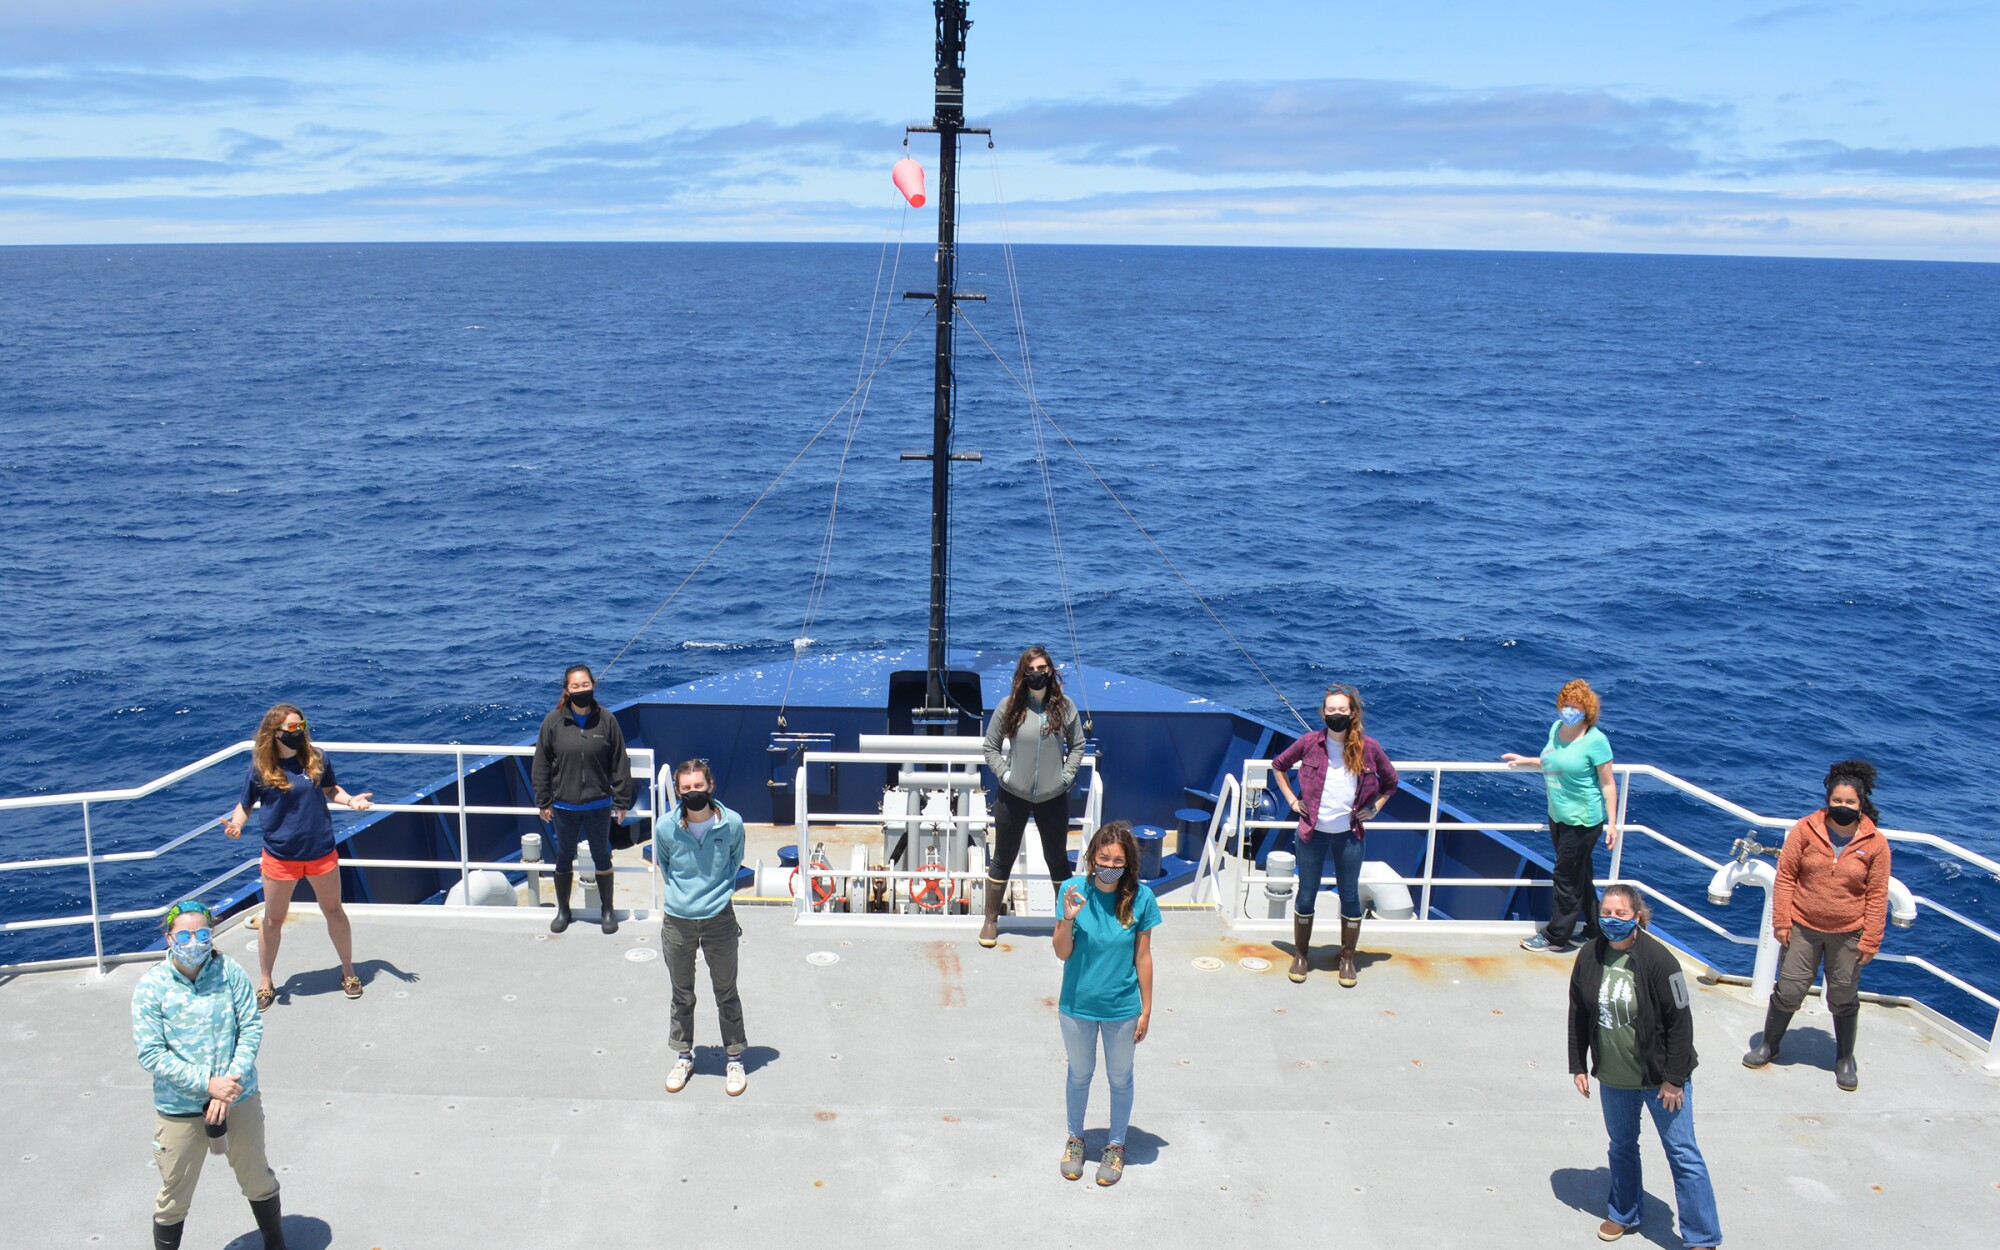 Members of the all women CalCOFI research team aboard the Naval research vessel R/V Sally Ride.